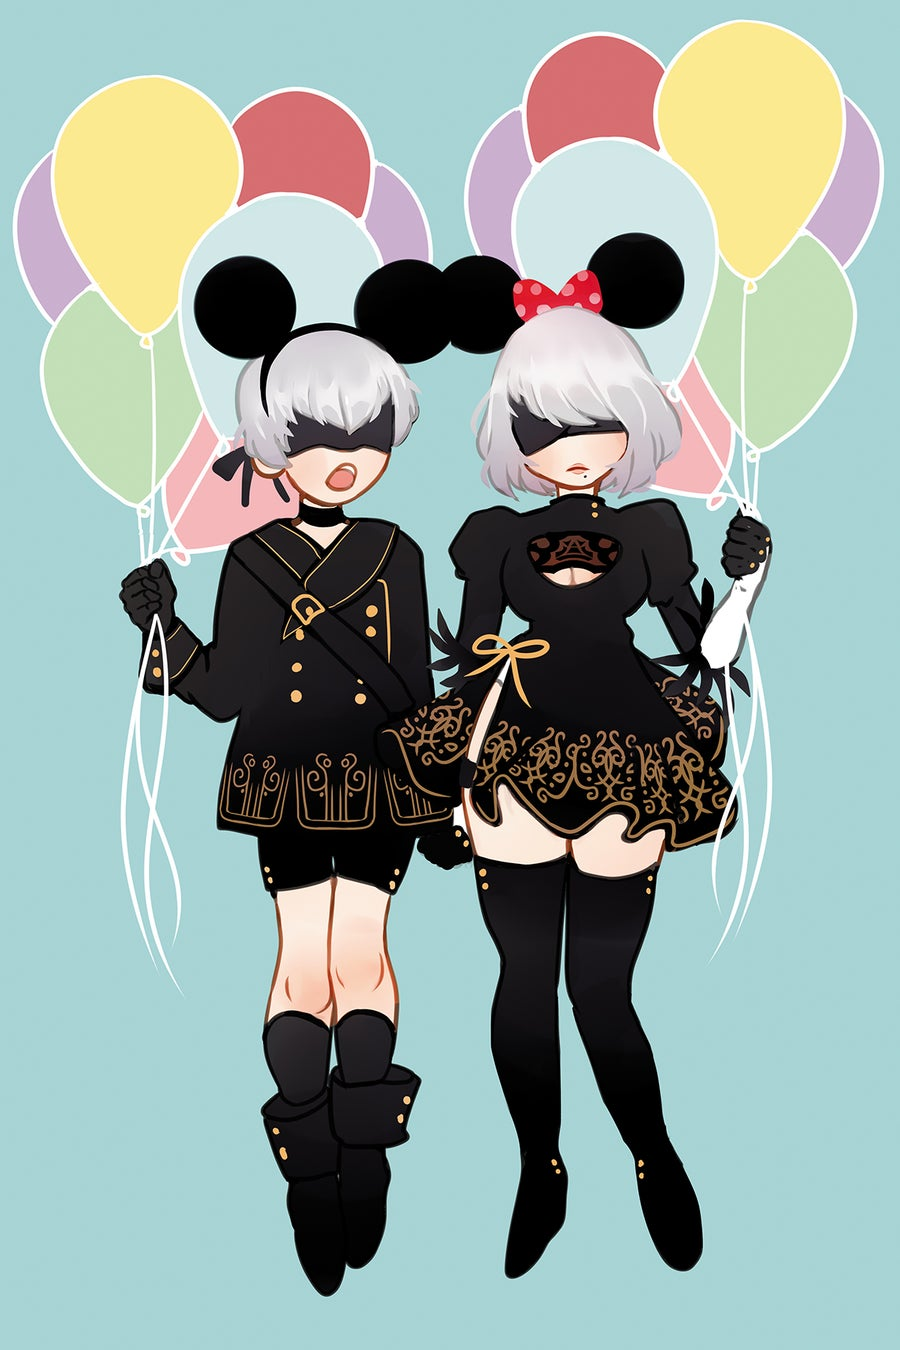 Image of 11x17 Nier Amusement Park Print